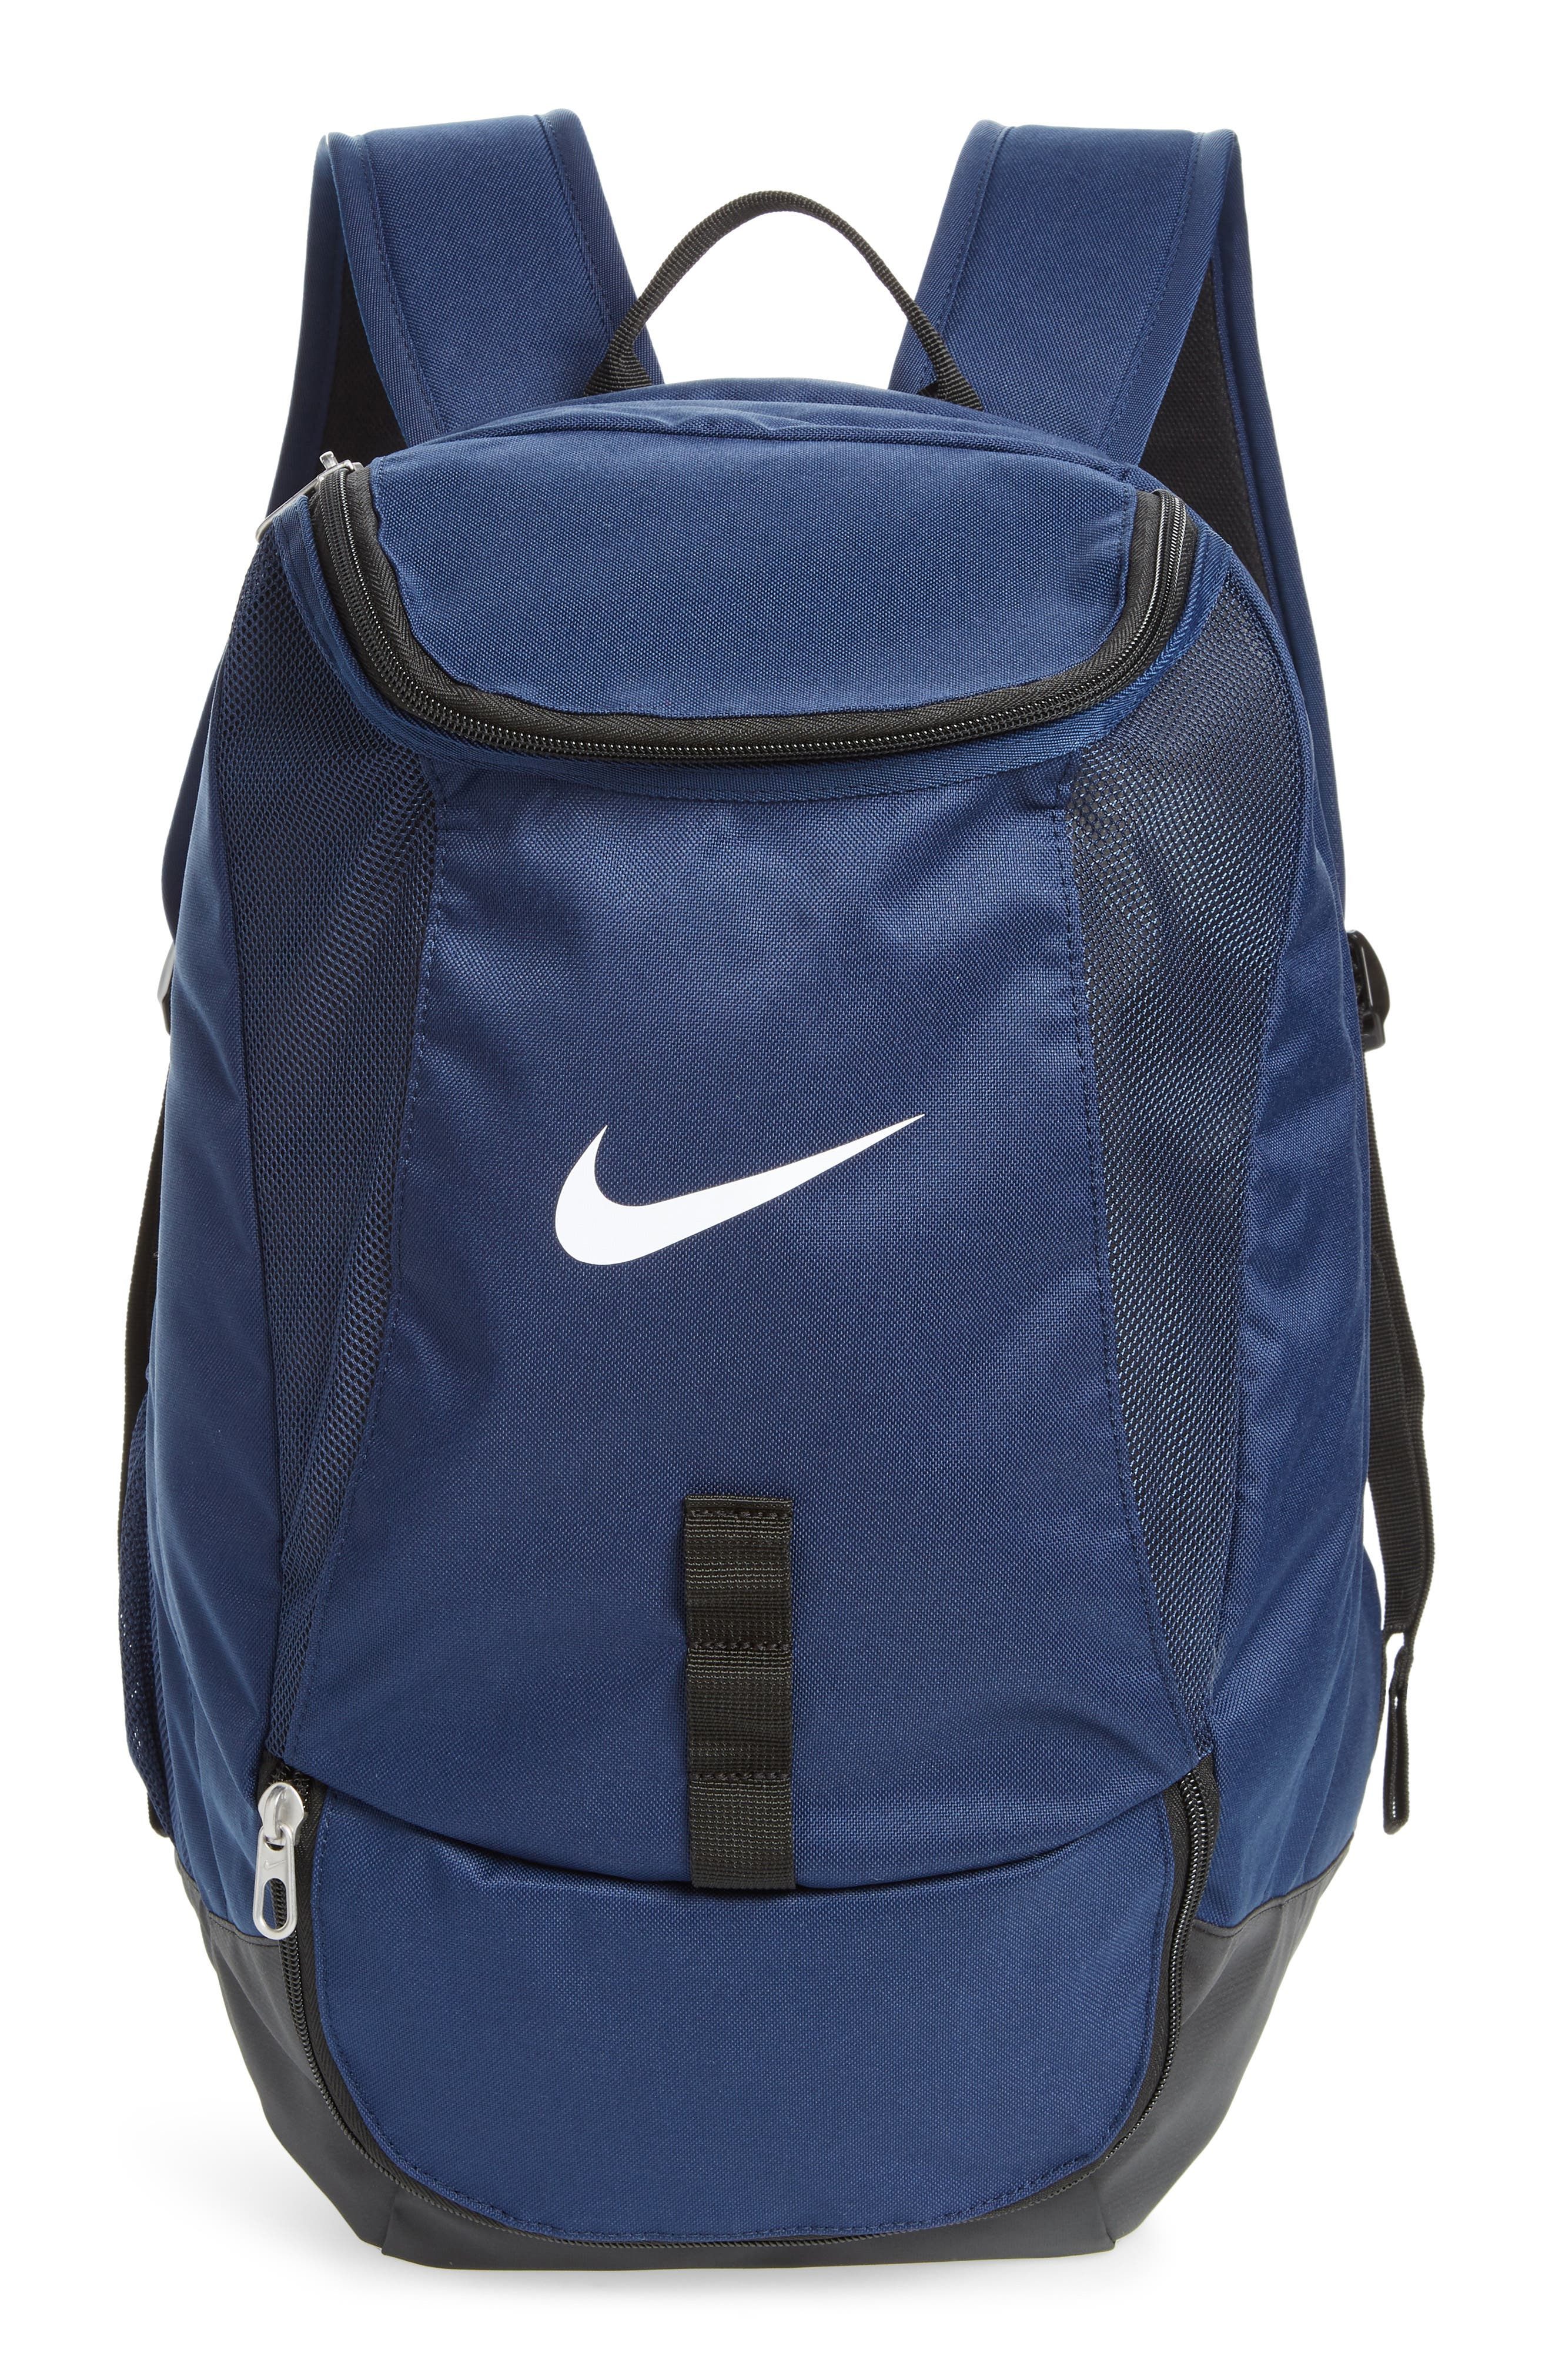 Club Team Backpack,                         Main,                         color, Midnight Navy/ Black/ White